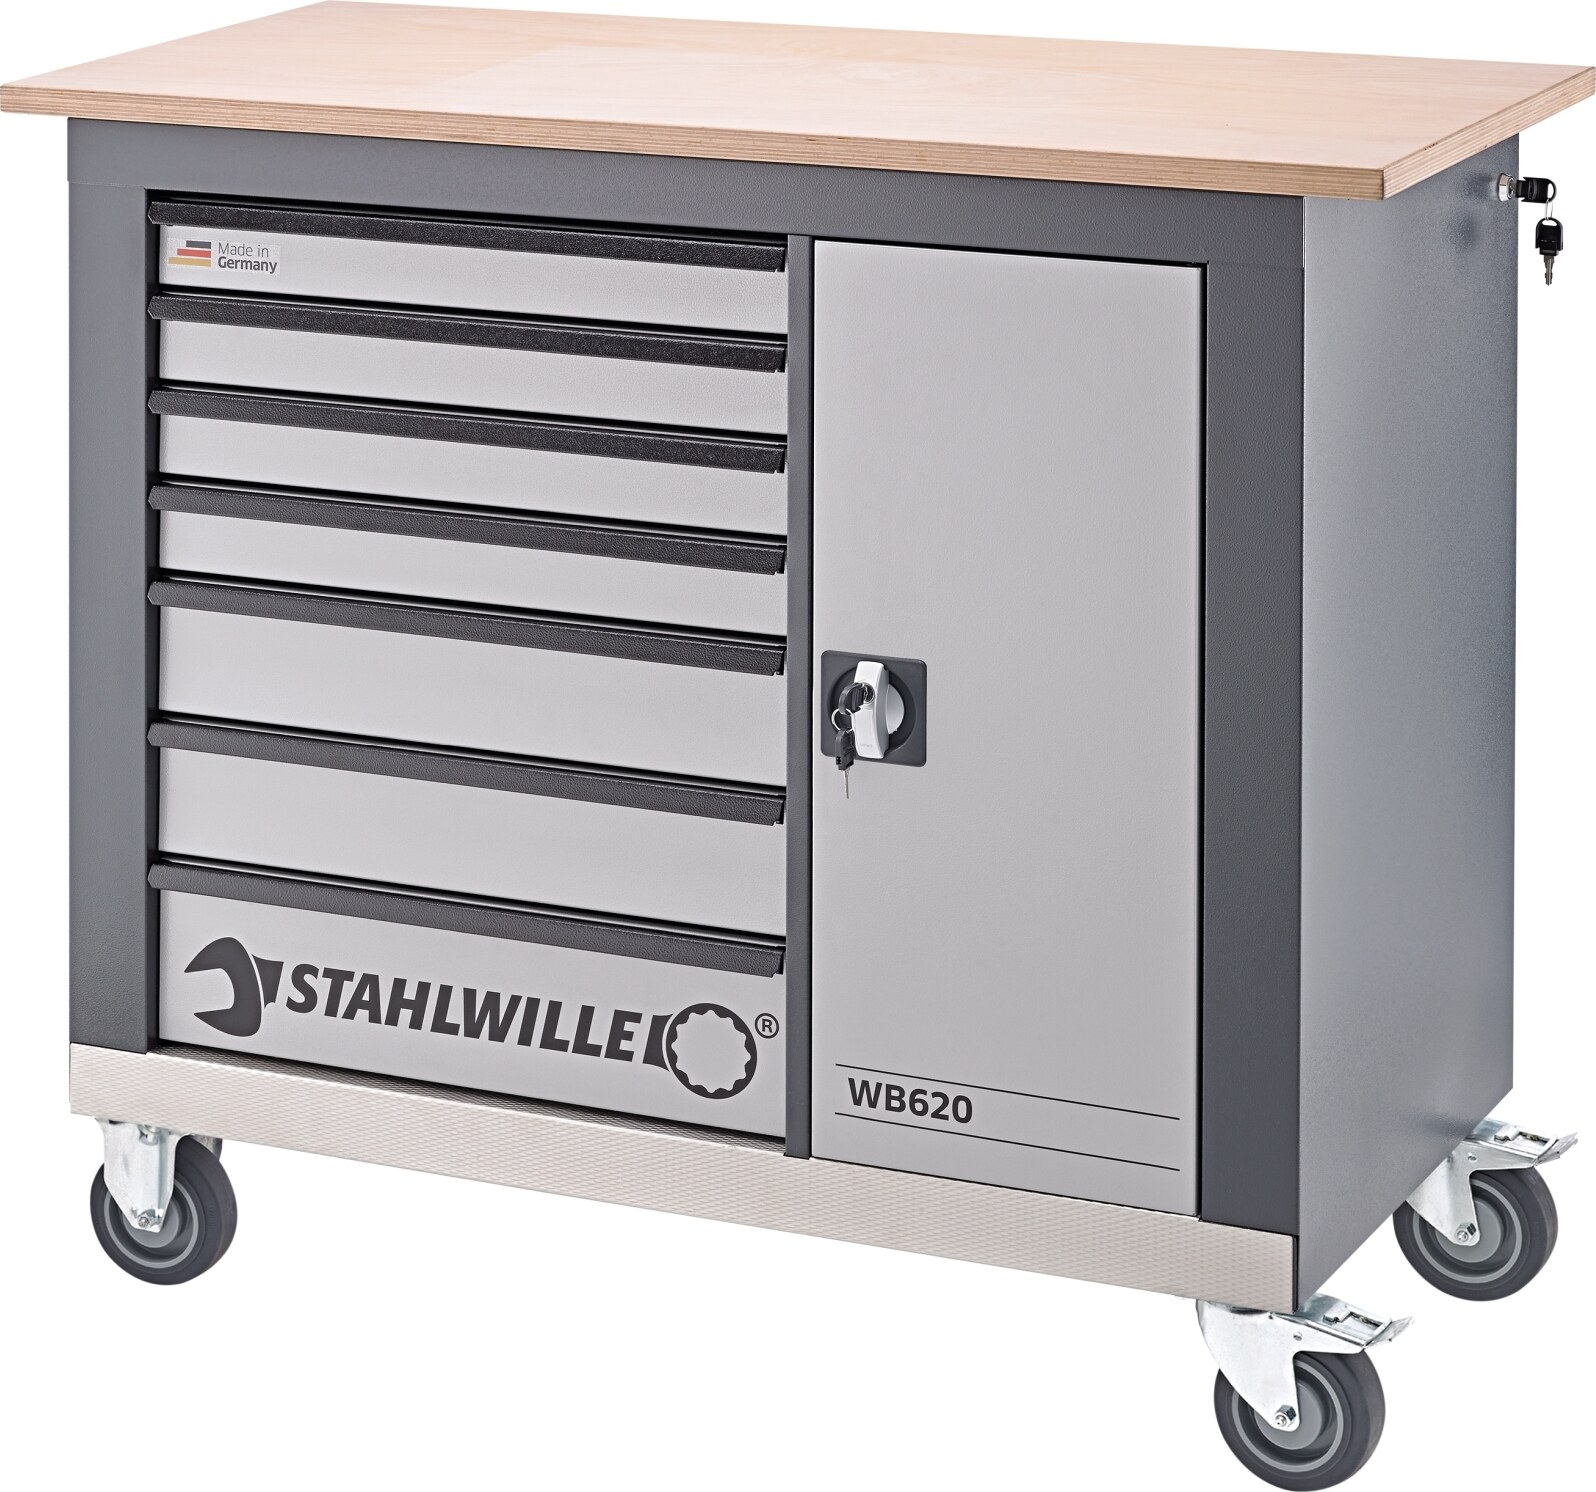 Stahlwille Mobile workbench 7 drawers charcoal grey, RAL 7016 L.1150 mm x W.500 mm x H.1030 mm, No WB620_85010620_e.jpg